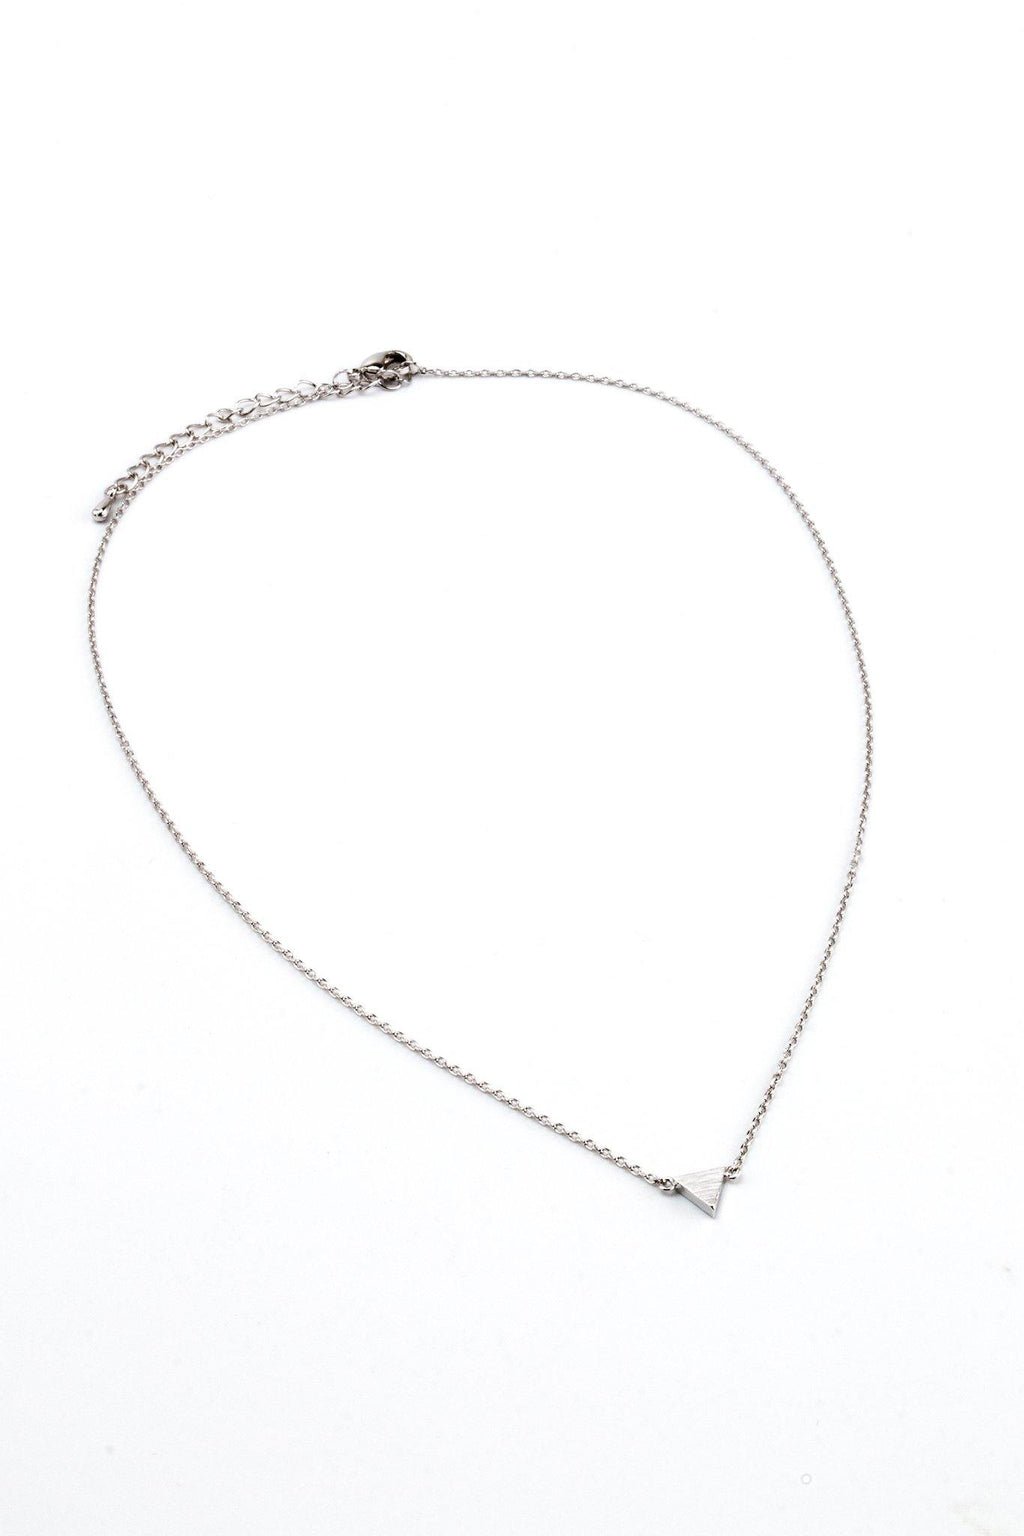 Single Triangle Necklace - Silver - Filosophy